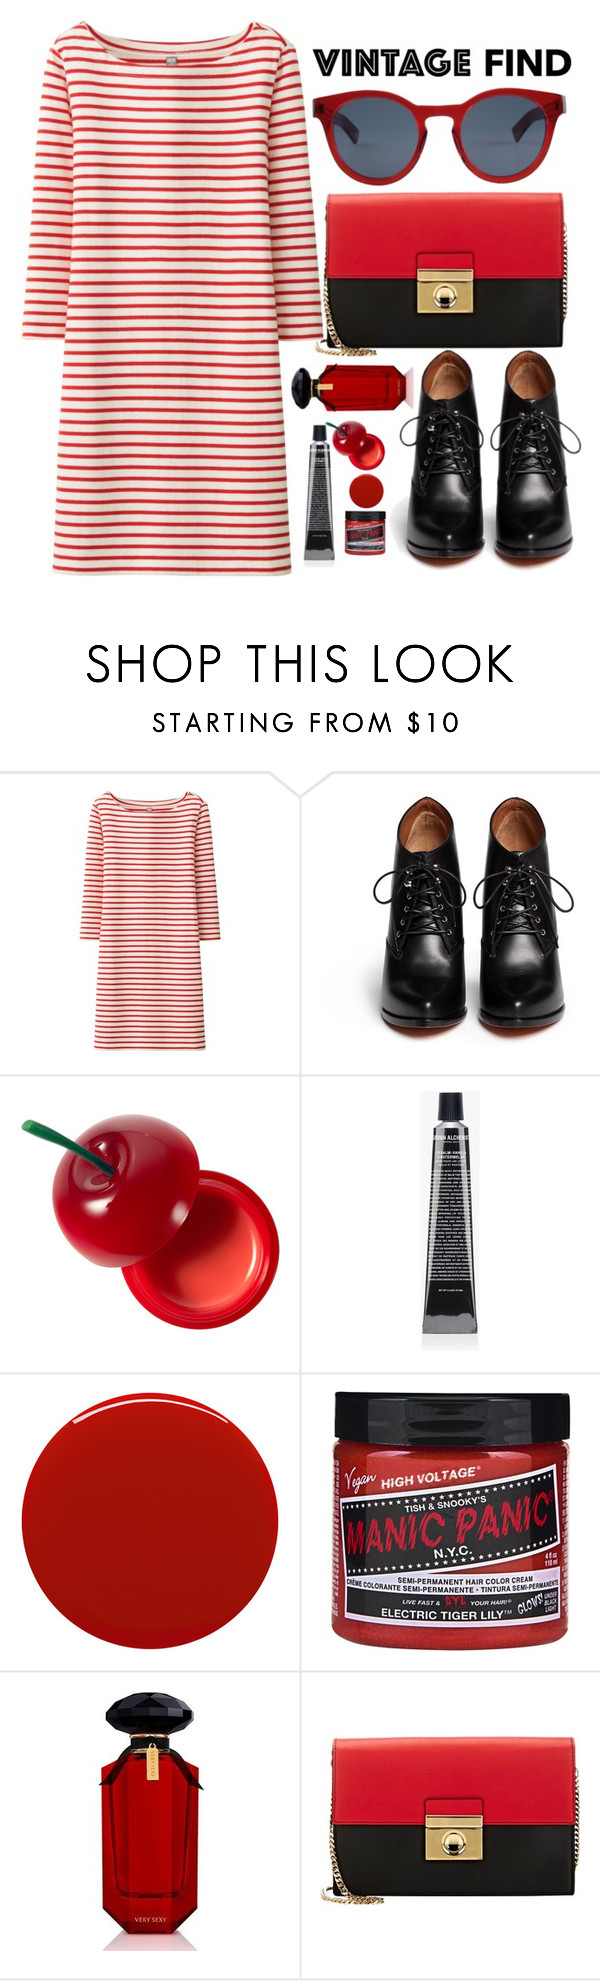 """Red Set"" by sweetnovember66 ❤ liked on Polyvore featuring Uniqlo, Givenchy, Tony Moly, Grown Alchemist, Smith & Cult, Victoria's Secret, Milly and Ahlem"